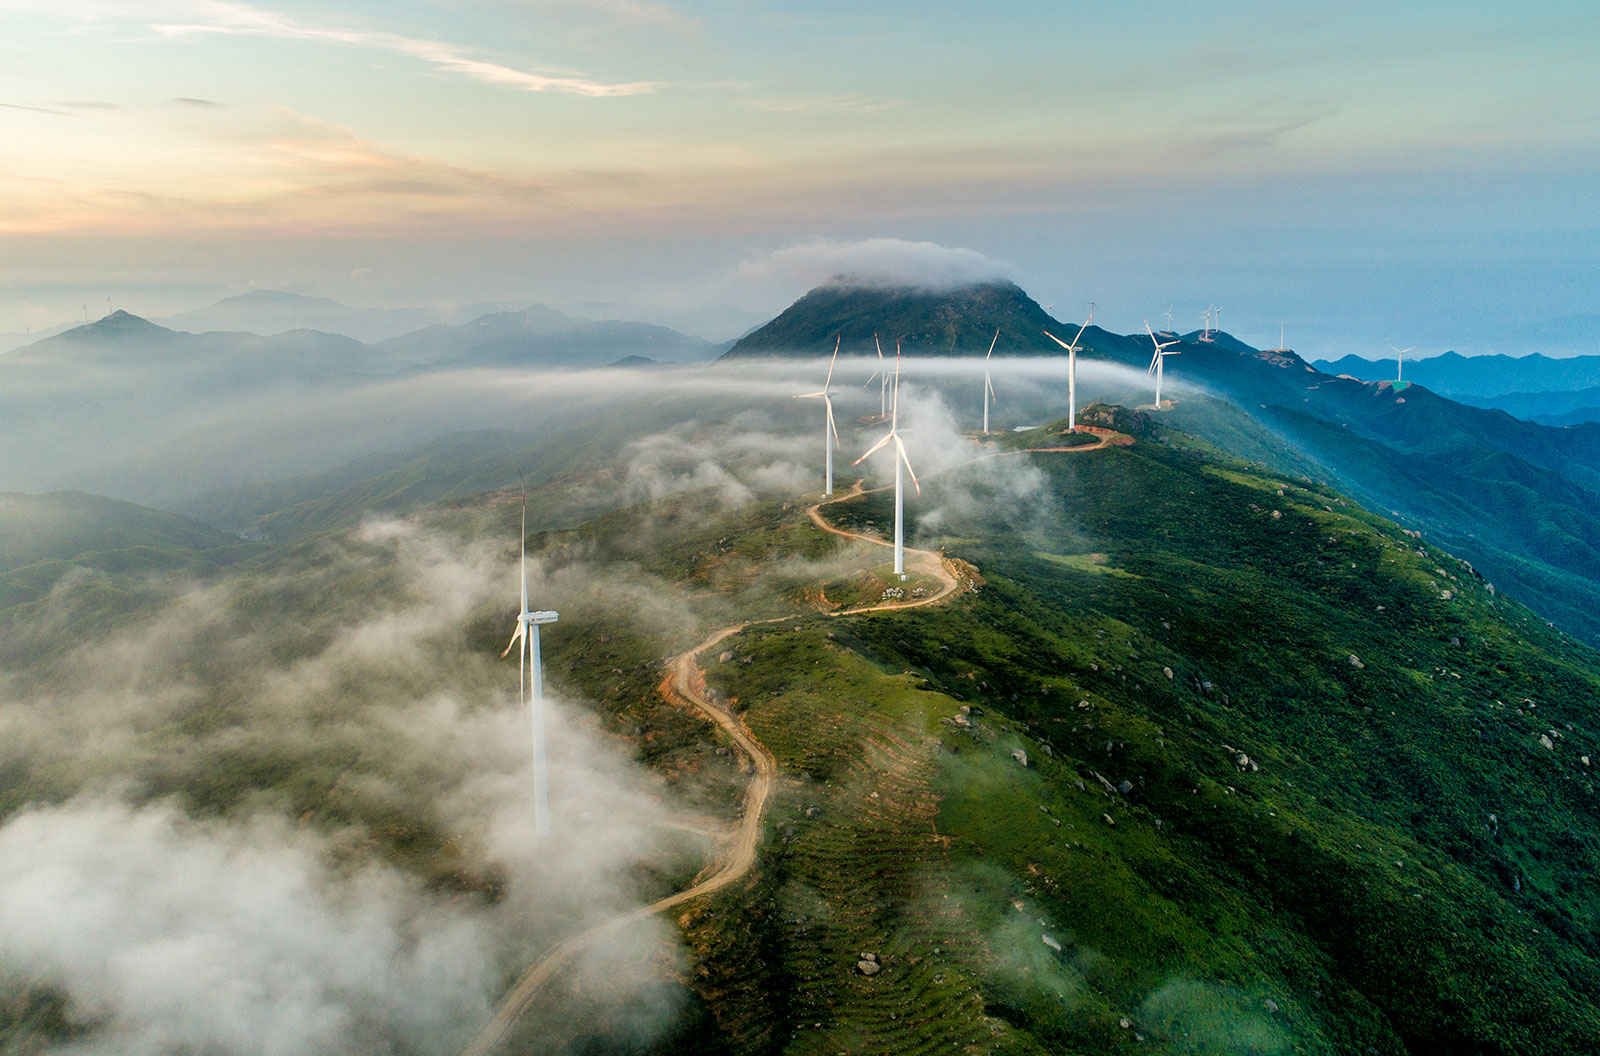 Aerial shot of a wind turbine field on the ridge of a mountain